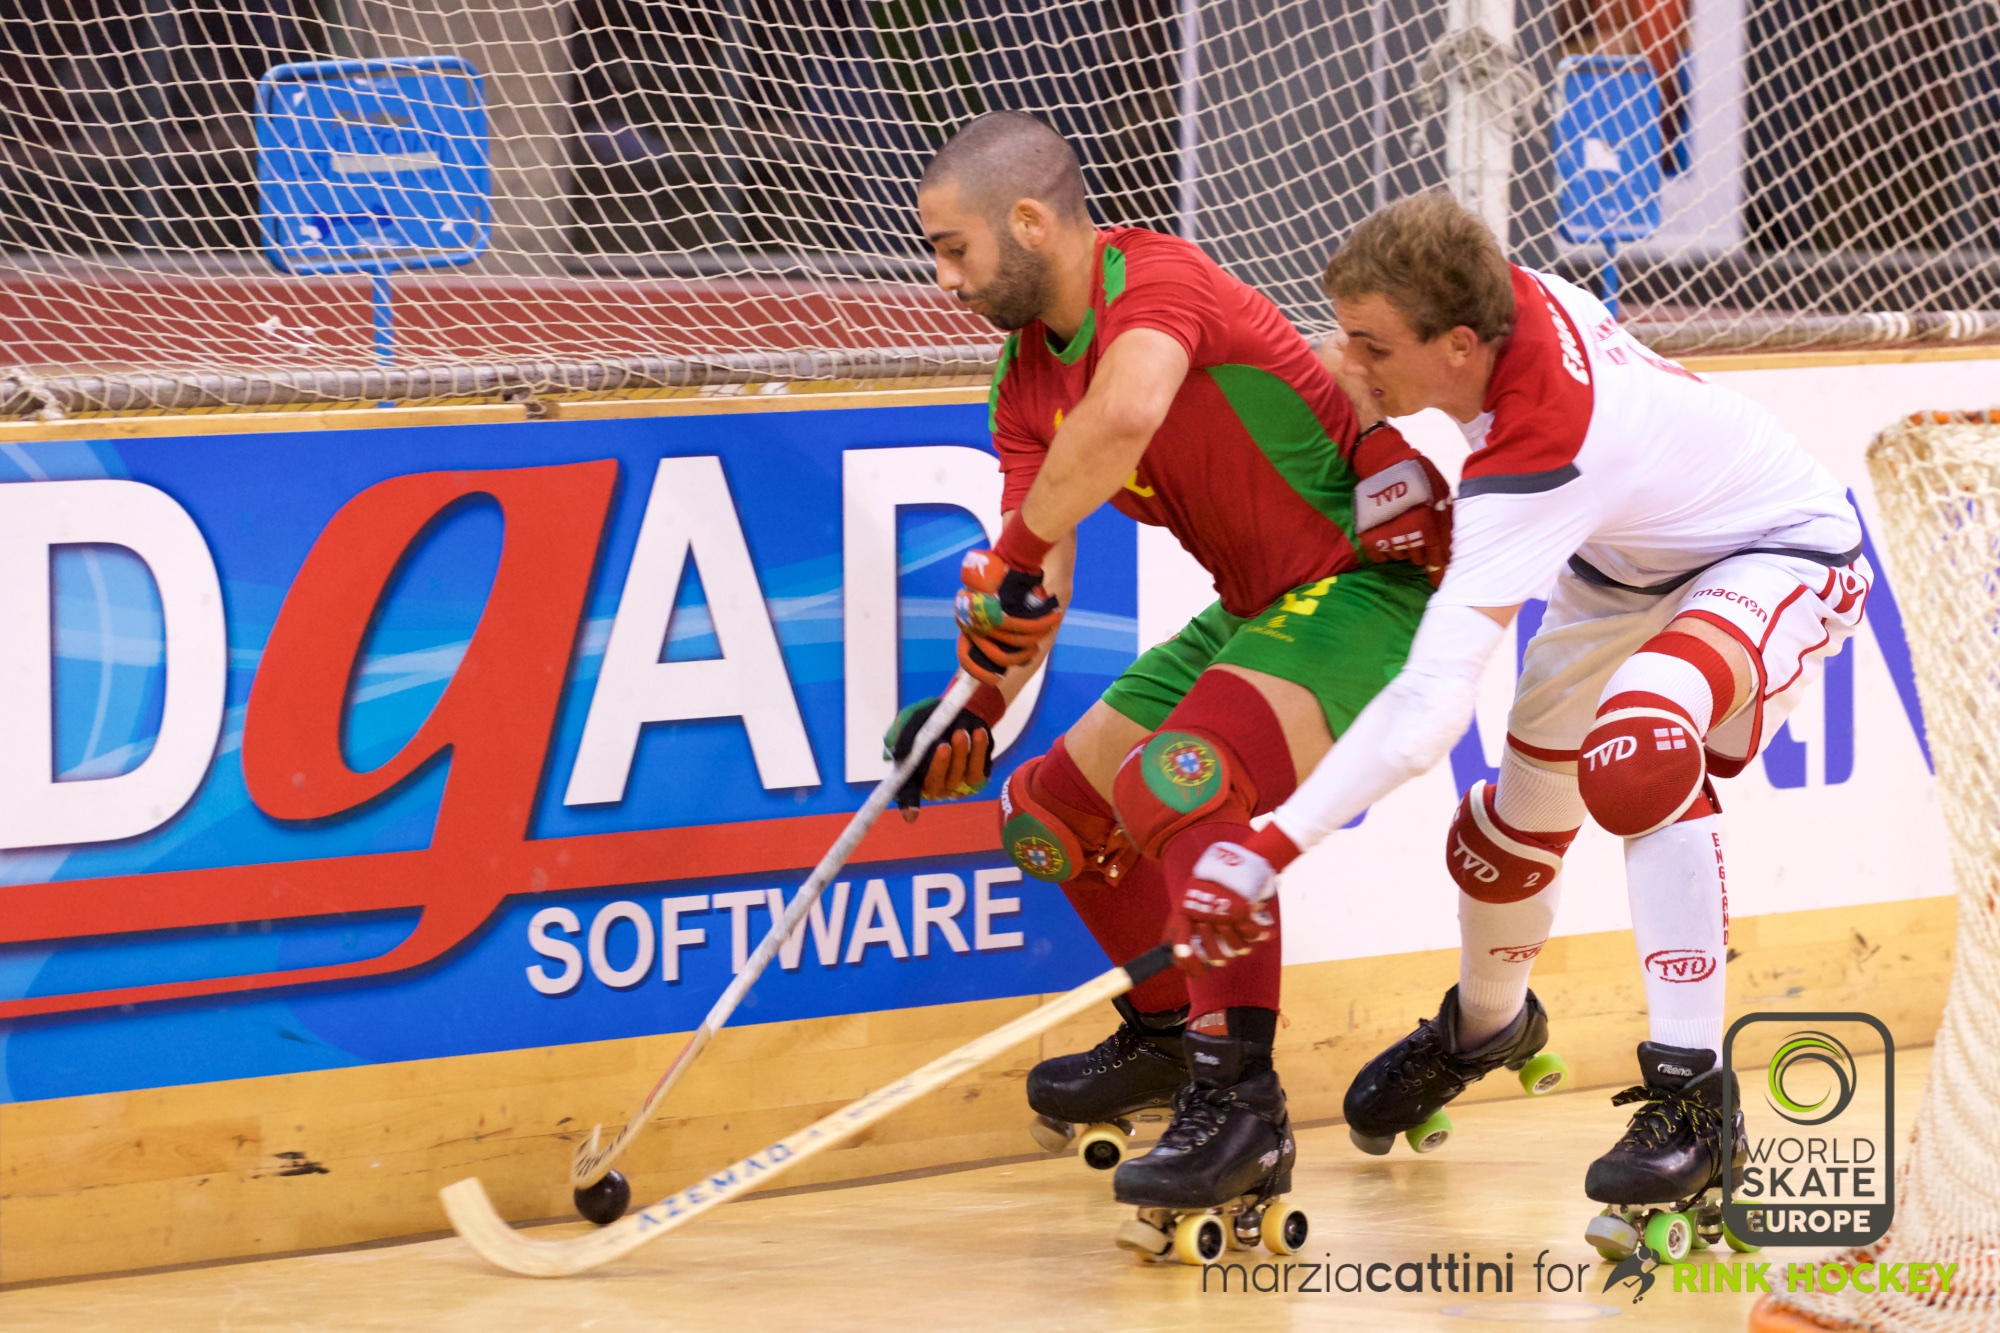 PHOTOS – 21/07/2018 - EUROHOCKEY CORUNA 2018 - Match #30 - England x Portugal – Photos by Marzia Cattini